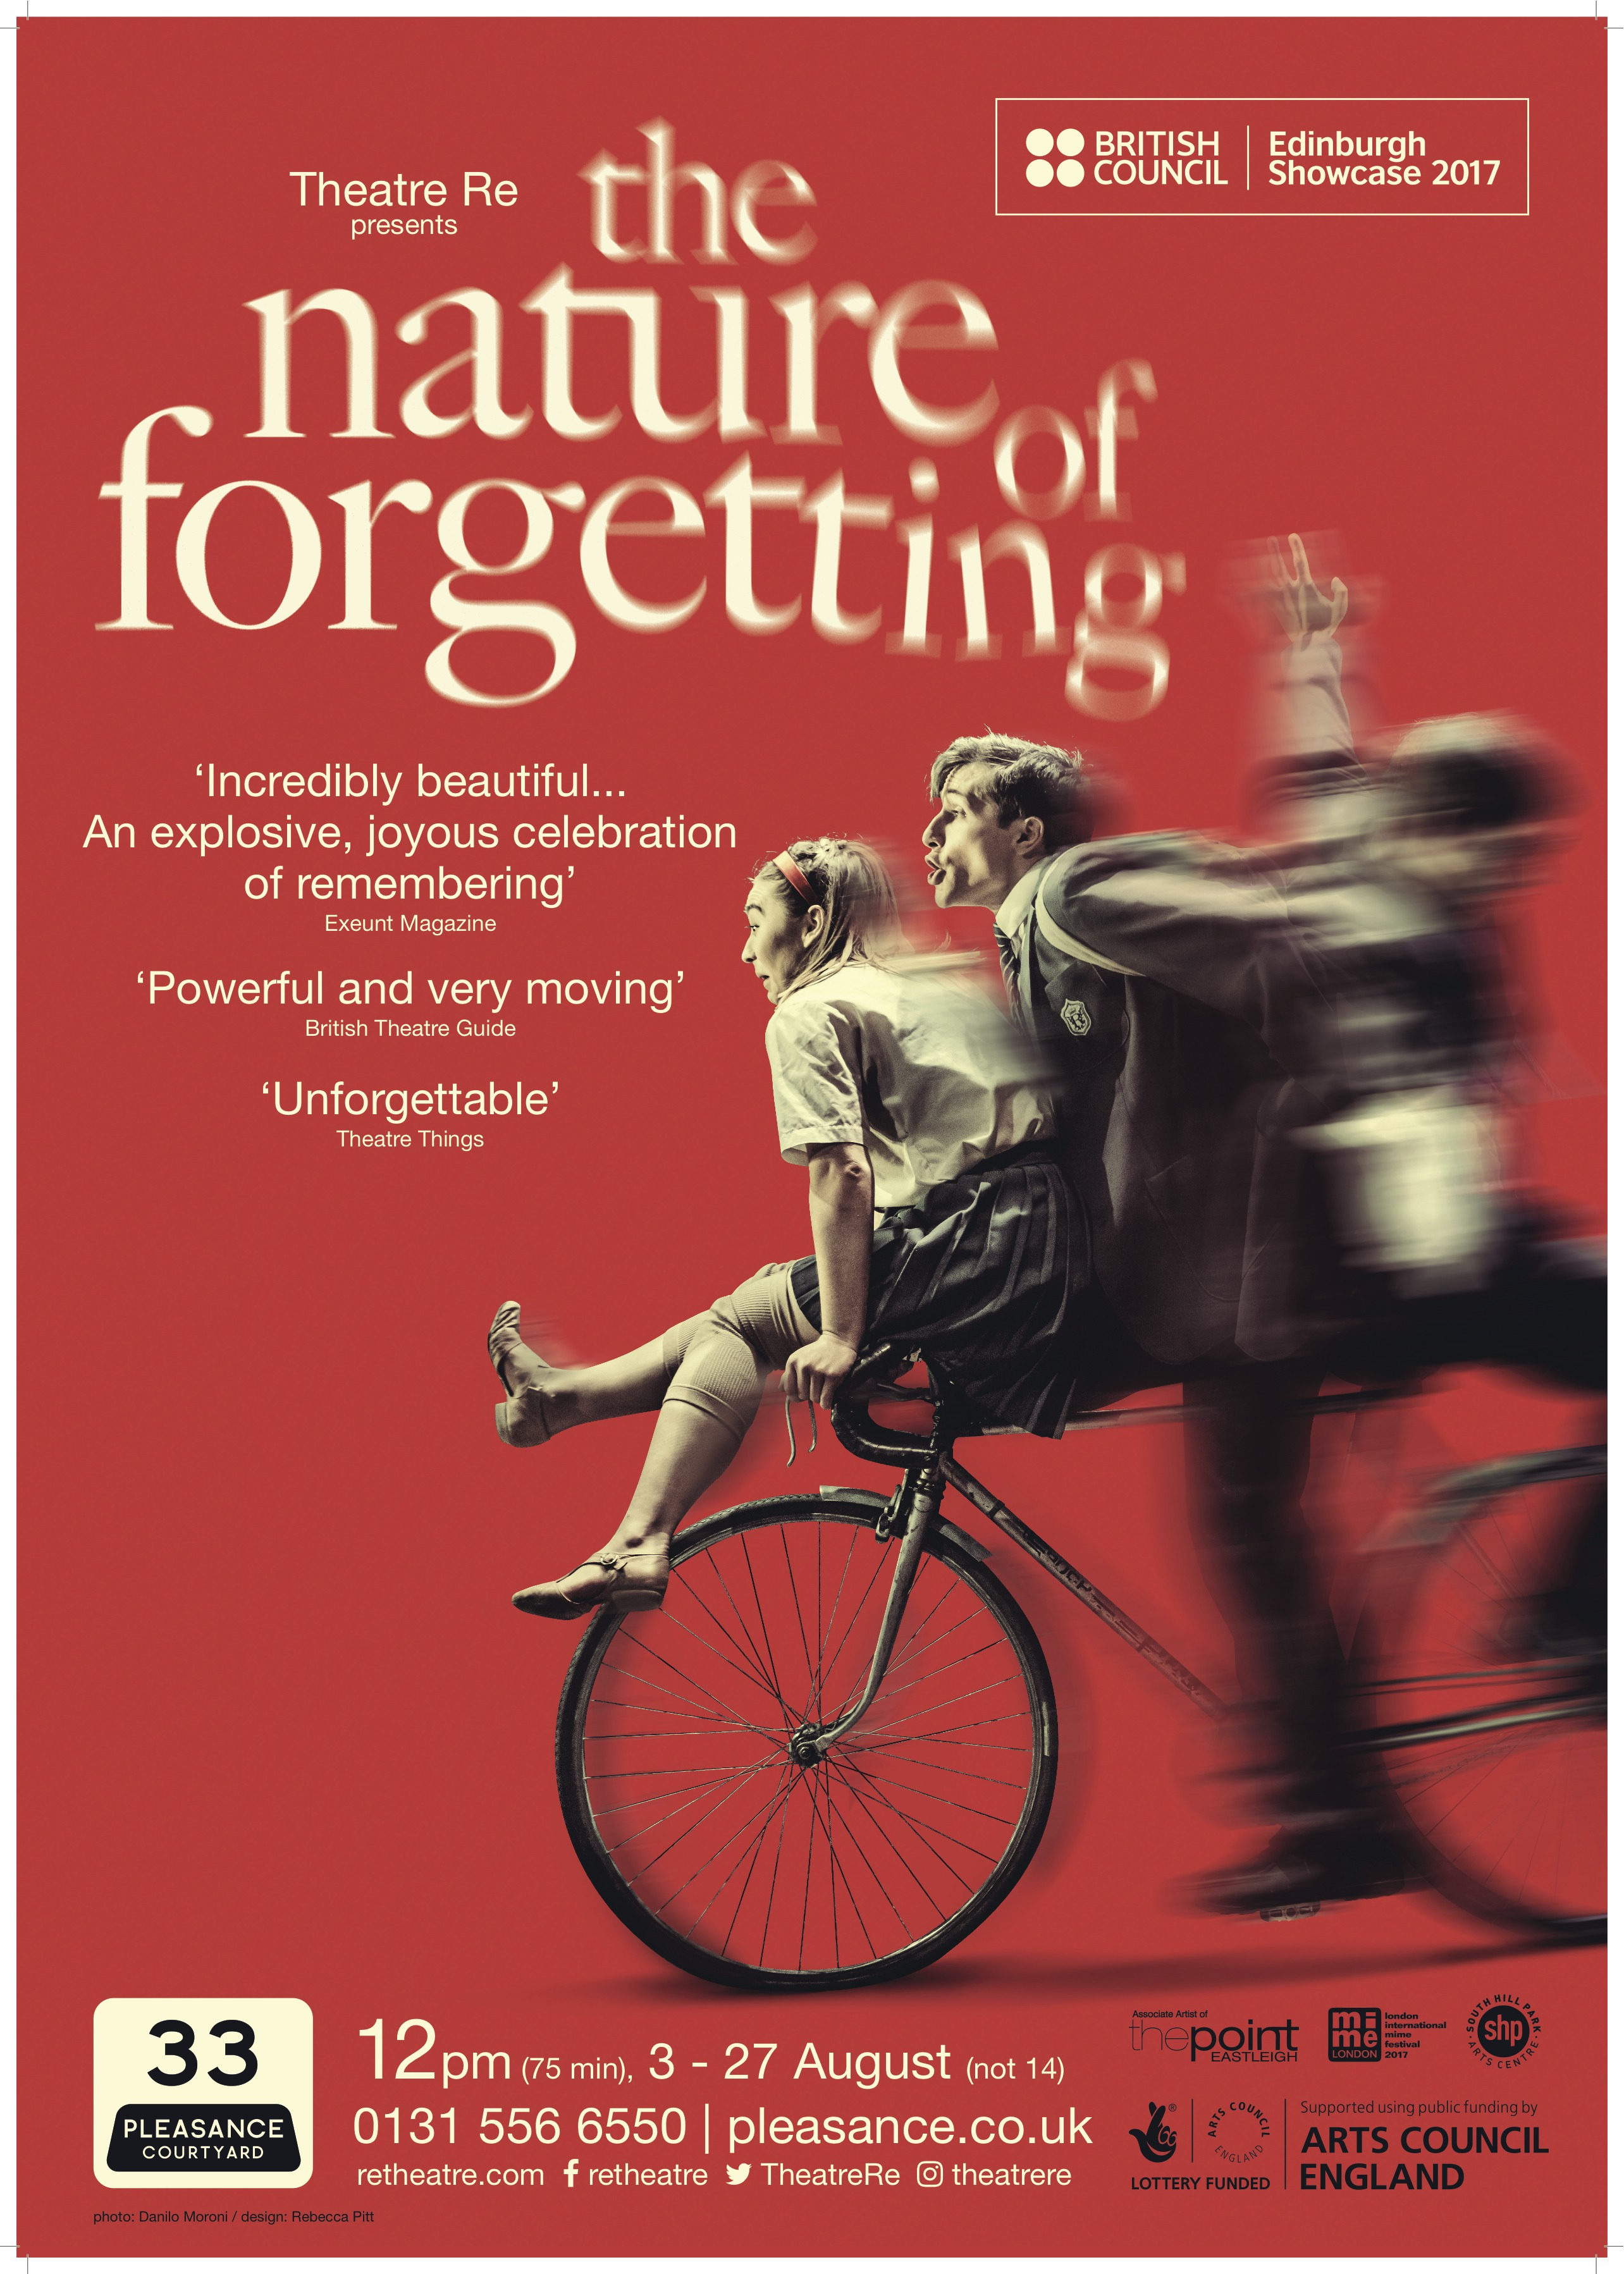 The Nature of Forgetting - Theatre Re